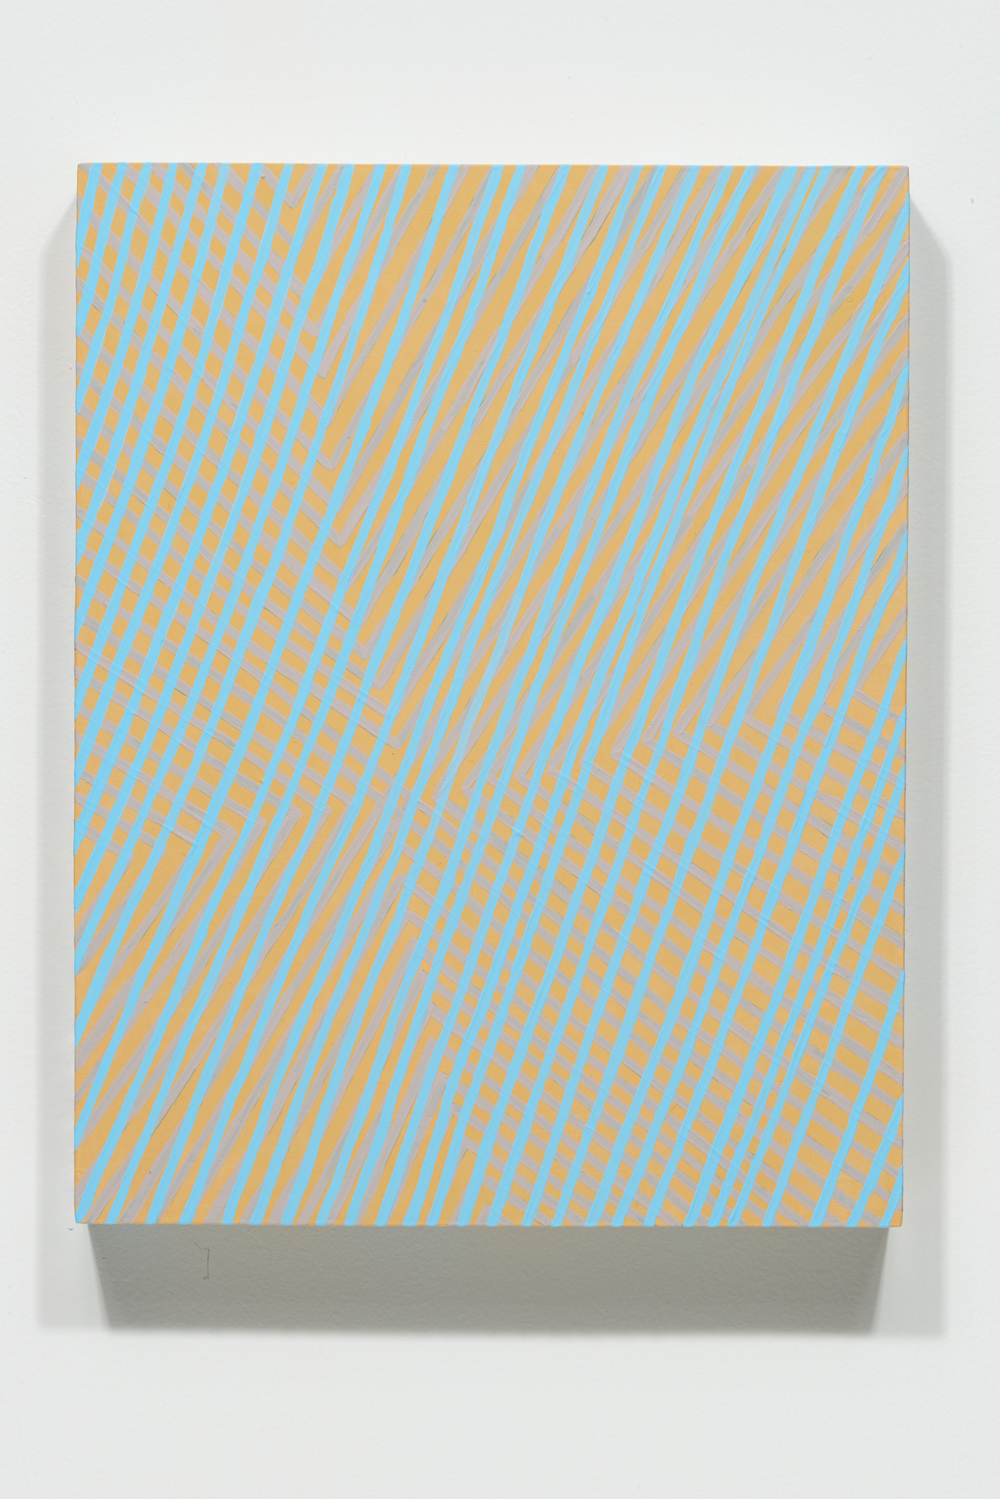 Mel Prest, Almost Invisible, 2014, acrylic and phosphorescent acrylic on panel, 14 x 11 x 2 inches